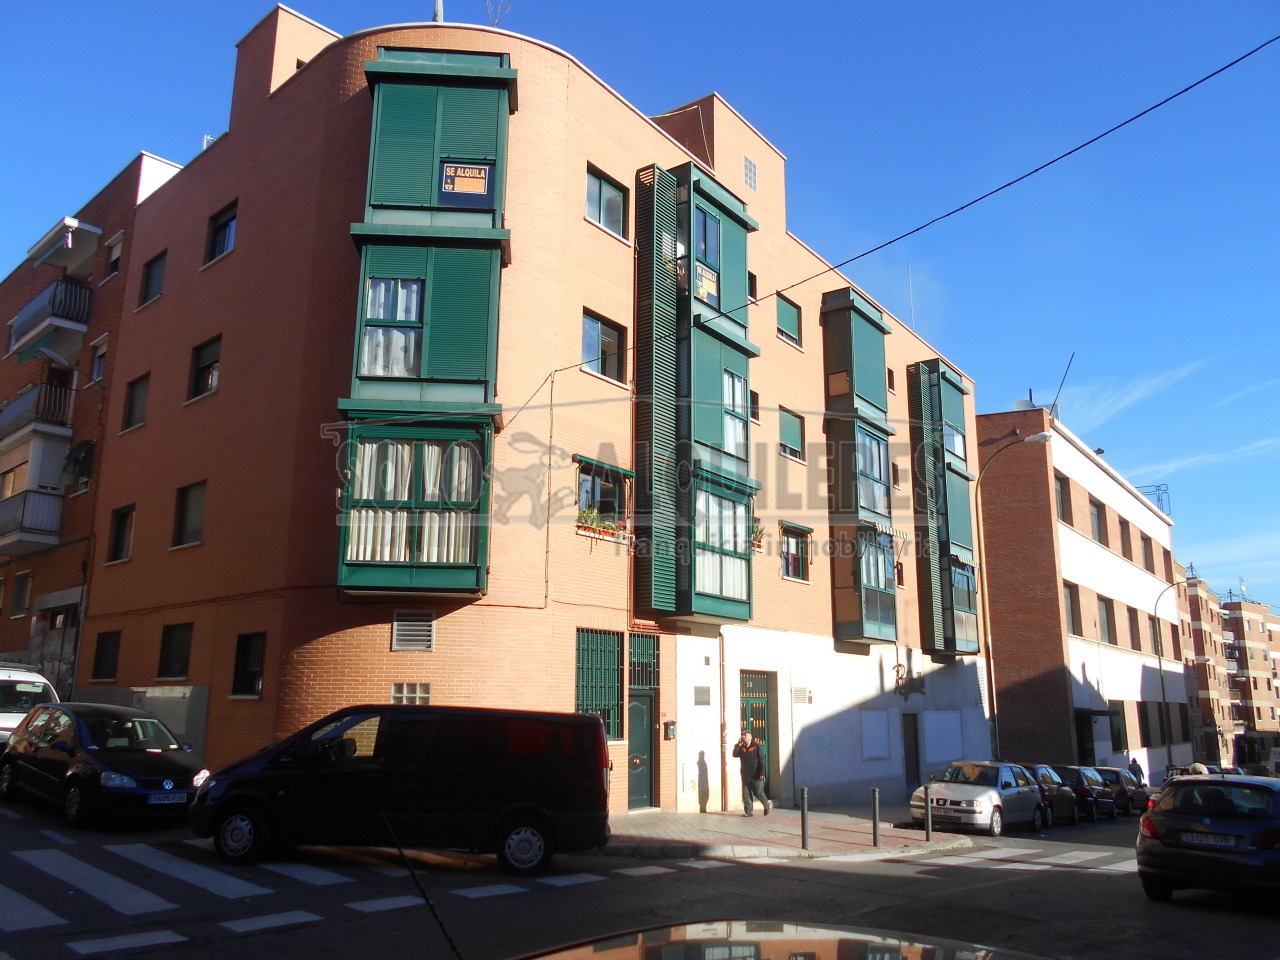 flat-for-rent-in-pericles-madrid-226030962